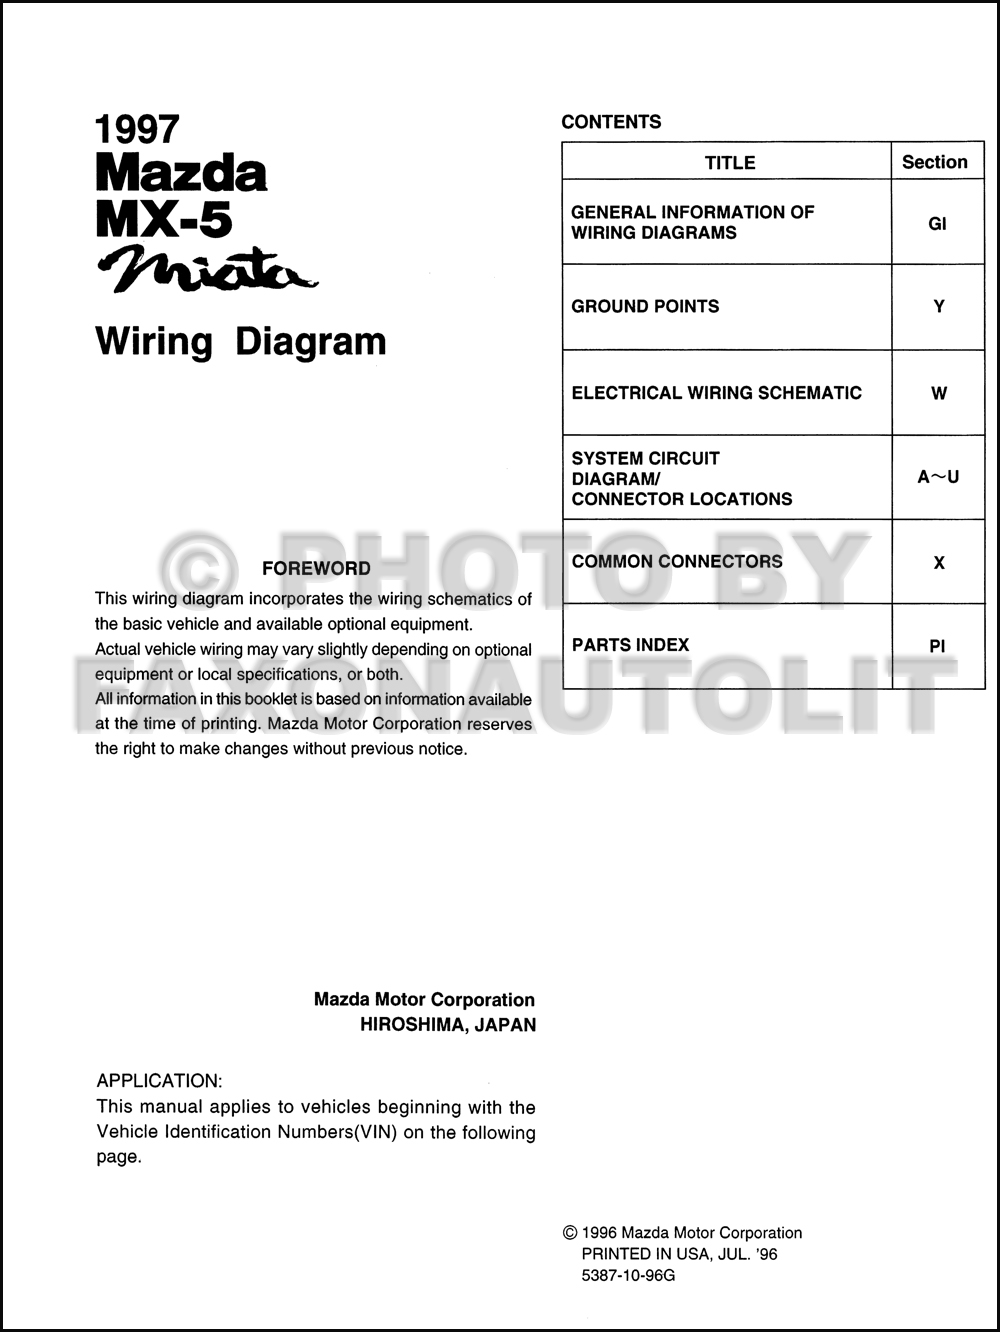 1997 Mazda MX-5 Miata Wiring Diagram Manual Original. click on thumbnail to  zoom